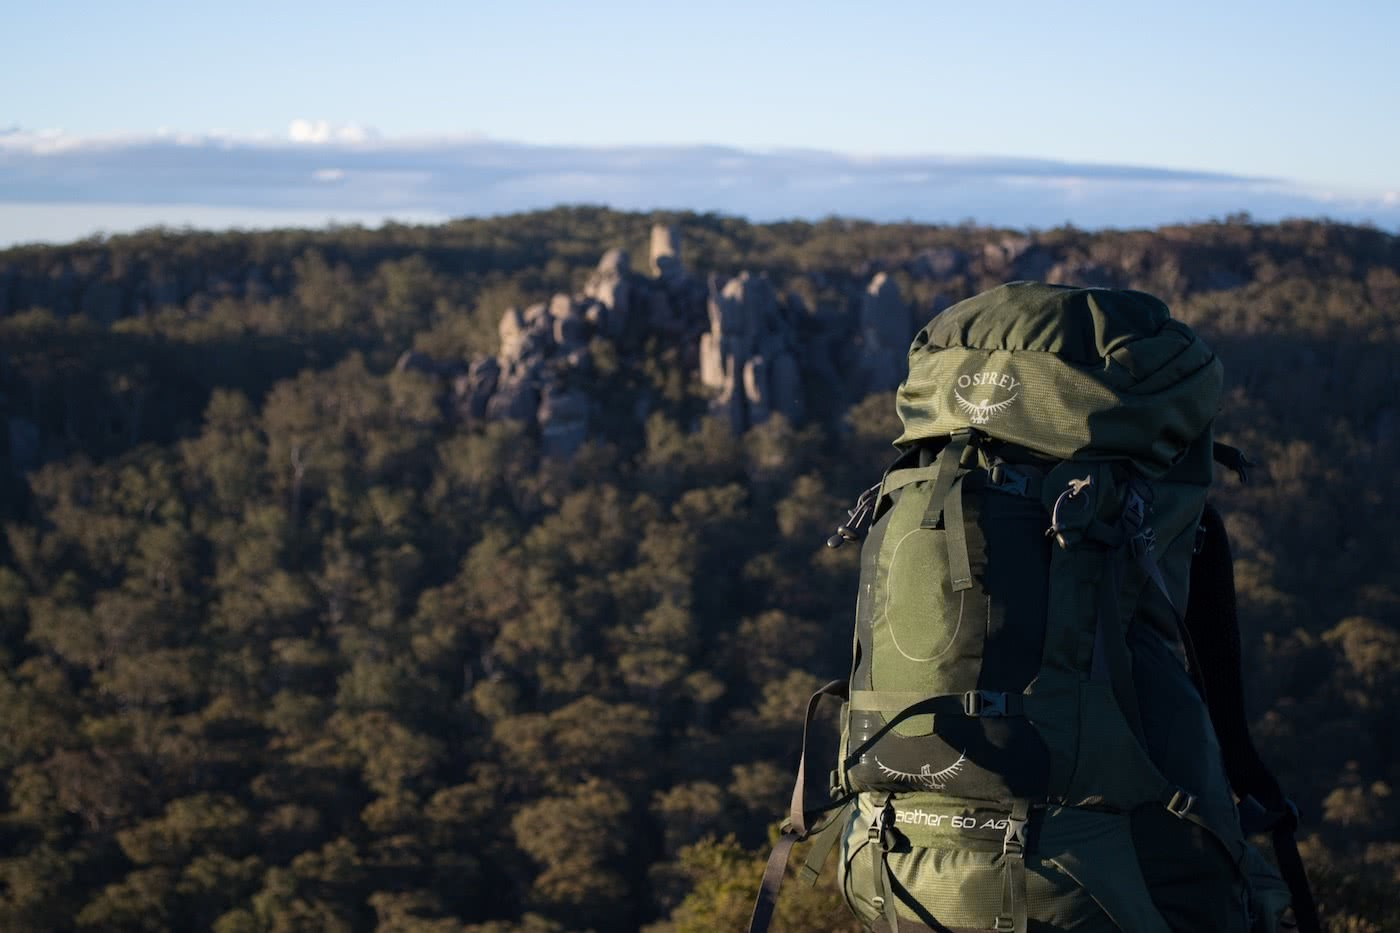 Dan Parkes, bushies untamed, osprey aether 60ag, gear review, main range national park, new england highlands, backpack, queensland